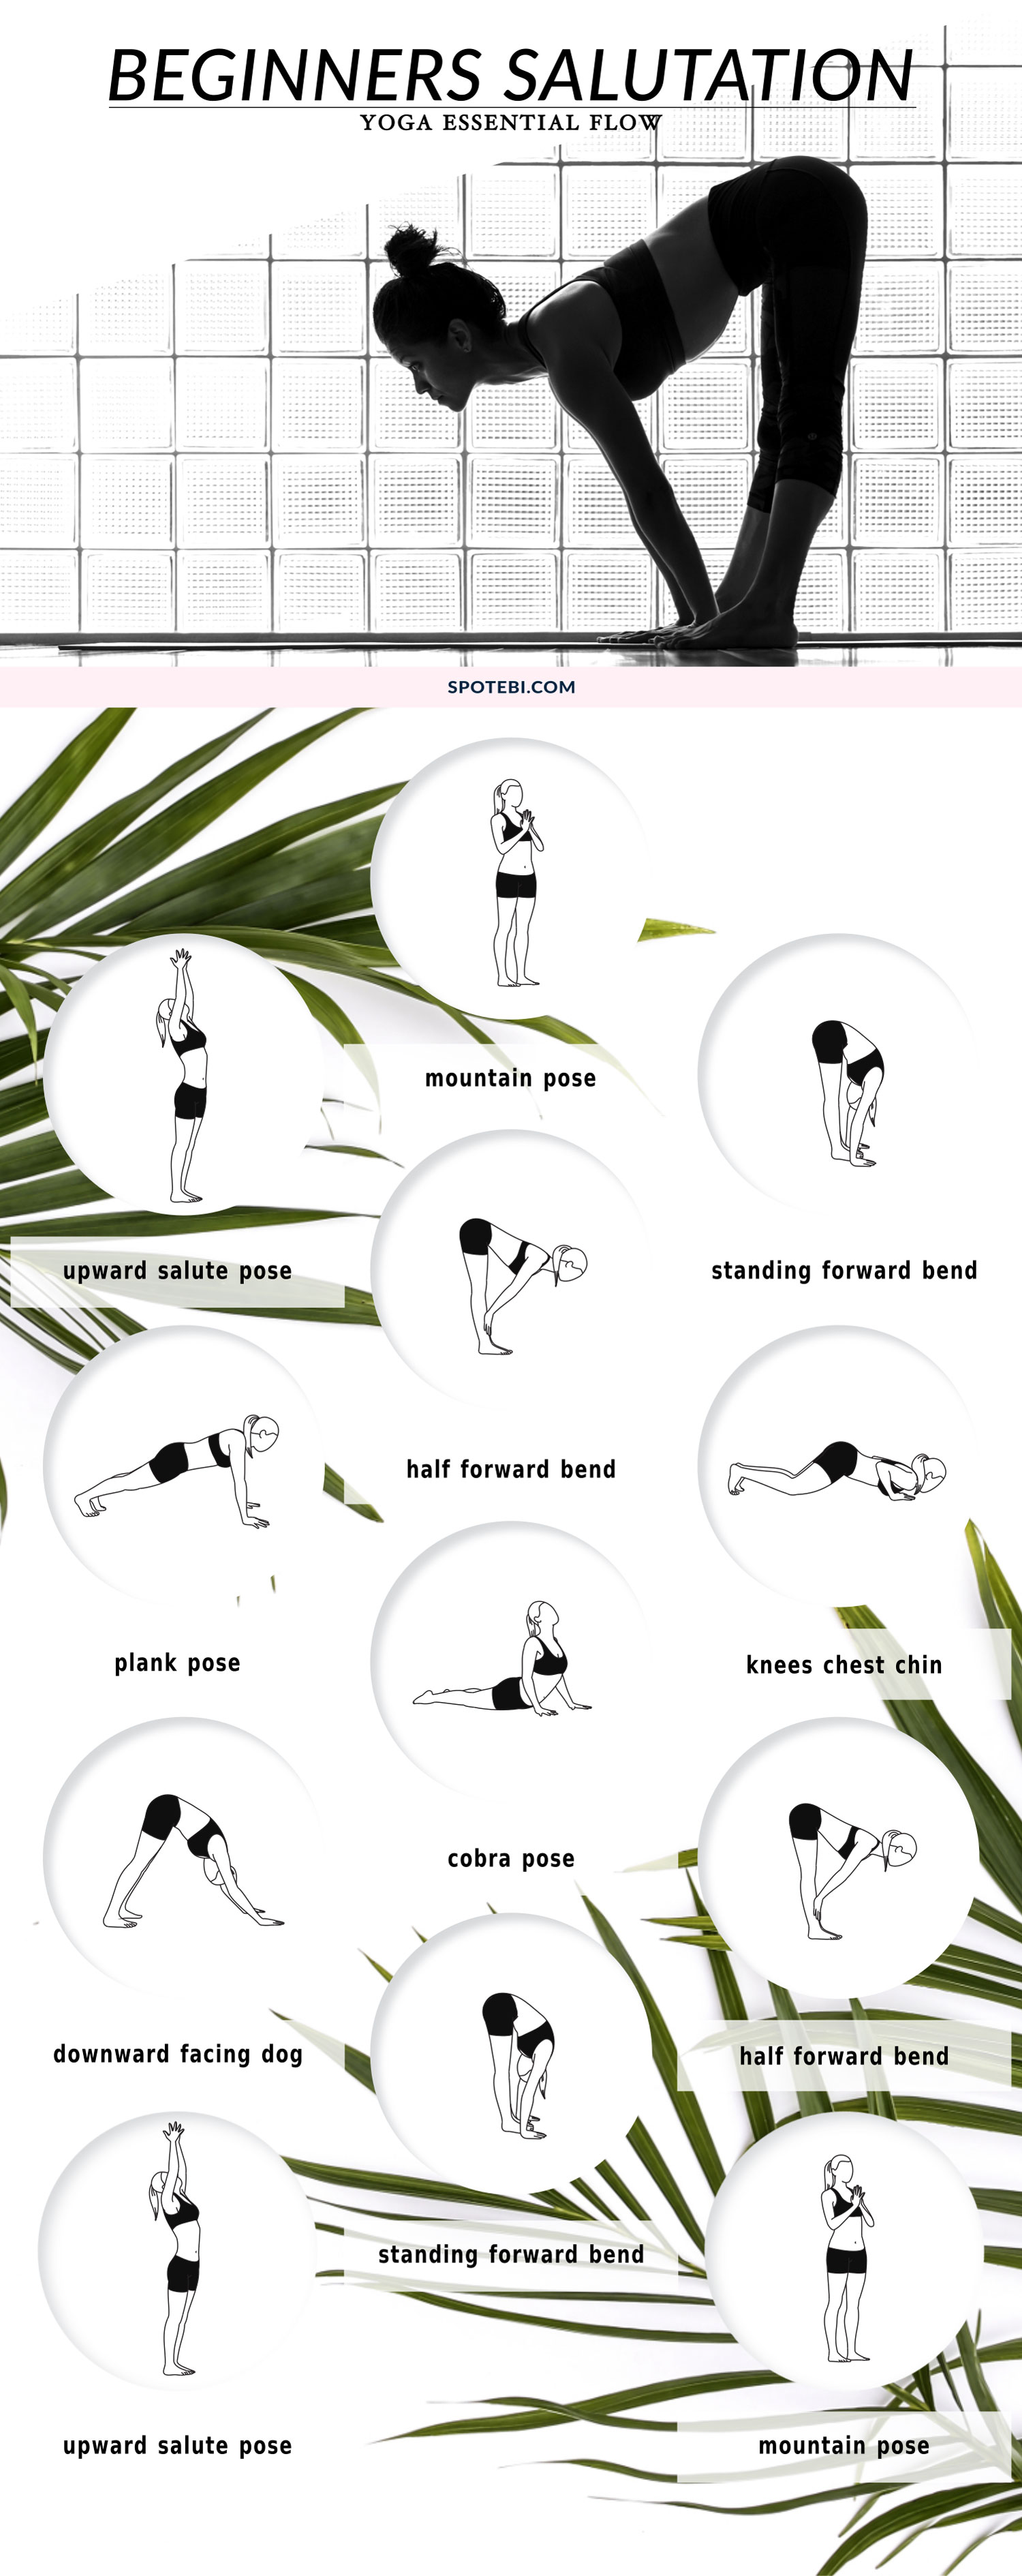 If you're new to yoga and want to start the day with an invigorating sequence, try this 15-minute beginners salutation flow. Move slowly through the poses and synchronize the breath with each posture to energize your body and mind! https://www.spotebi.com/yoga-sequences/beginners-salutation-flow/